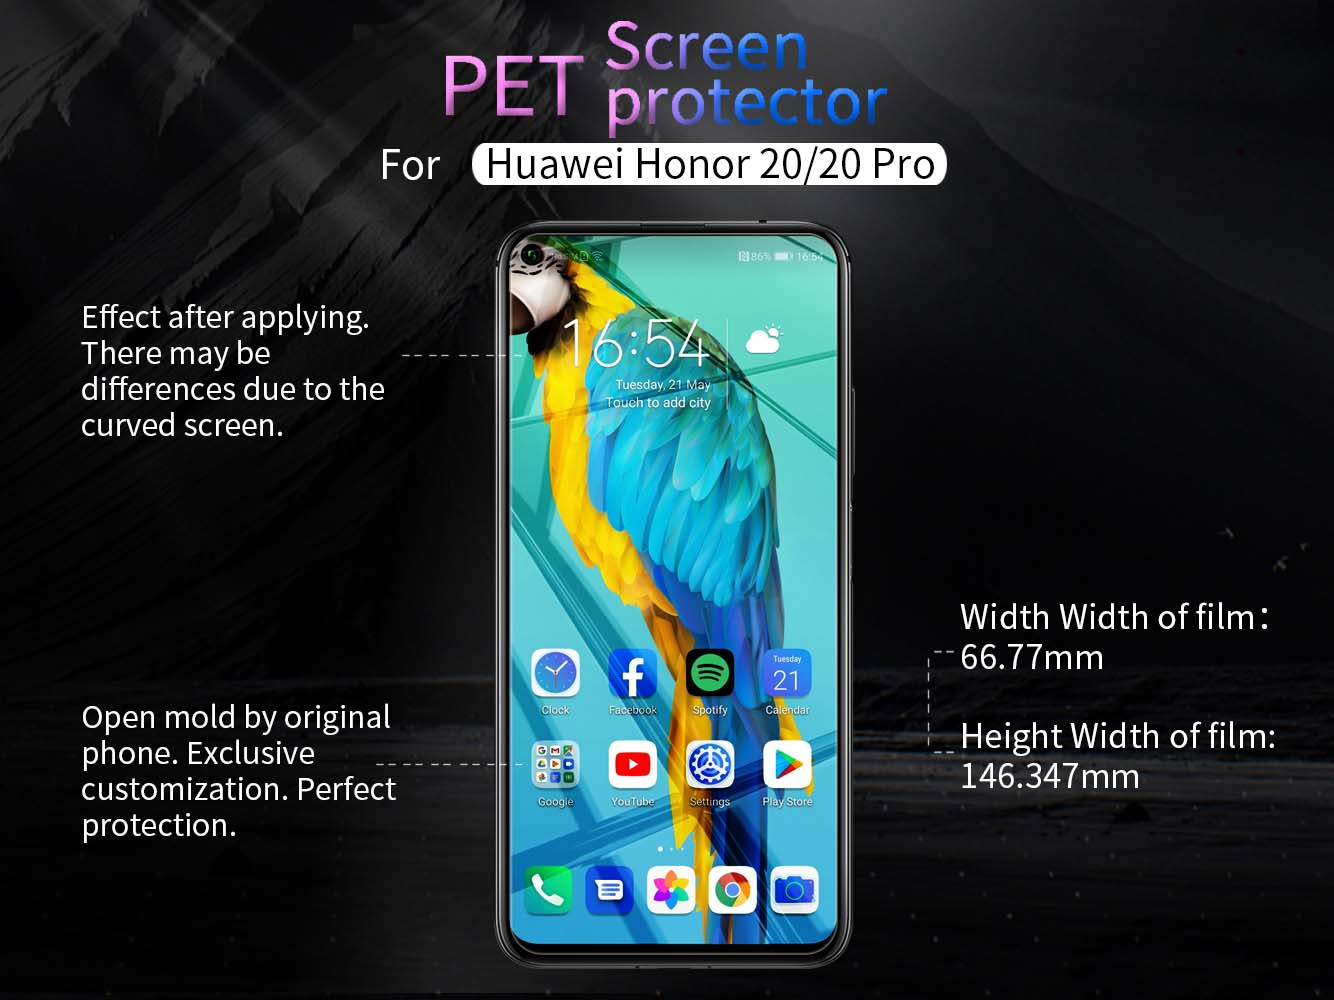 HUAWEI Honor 20 screen protector